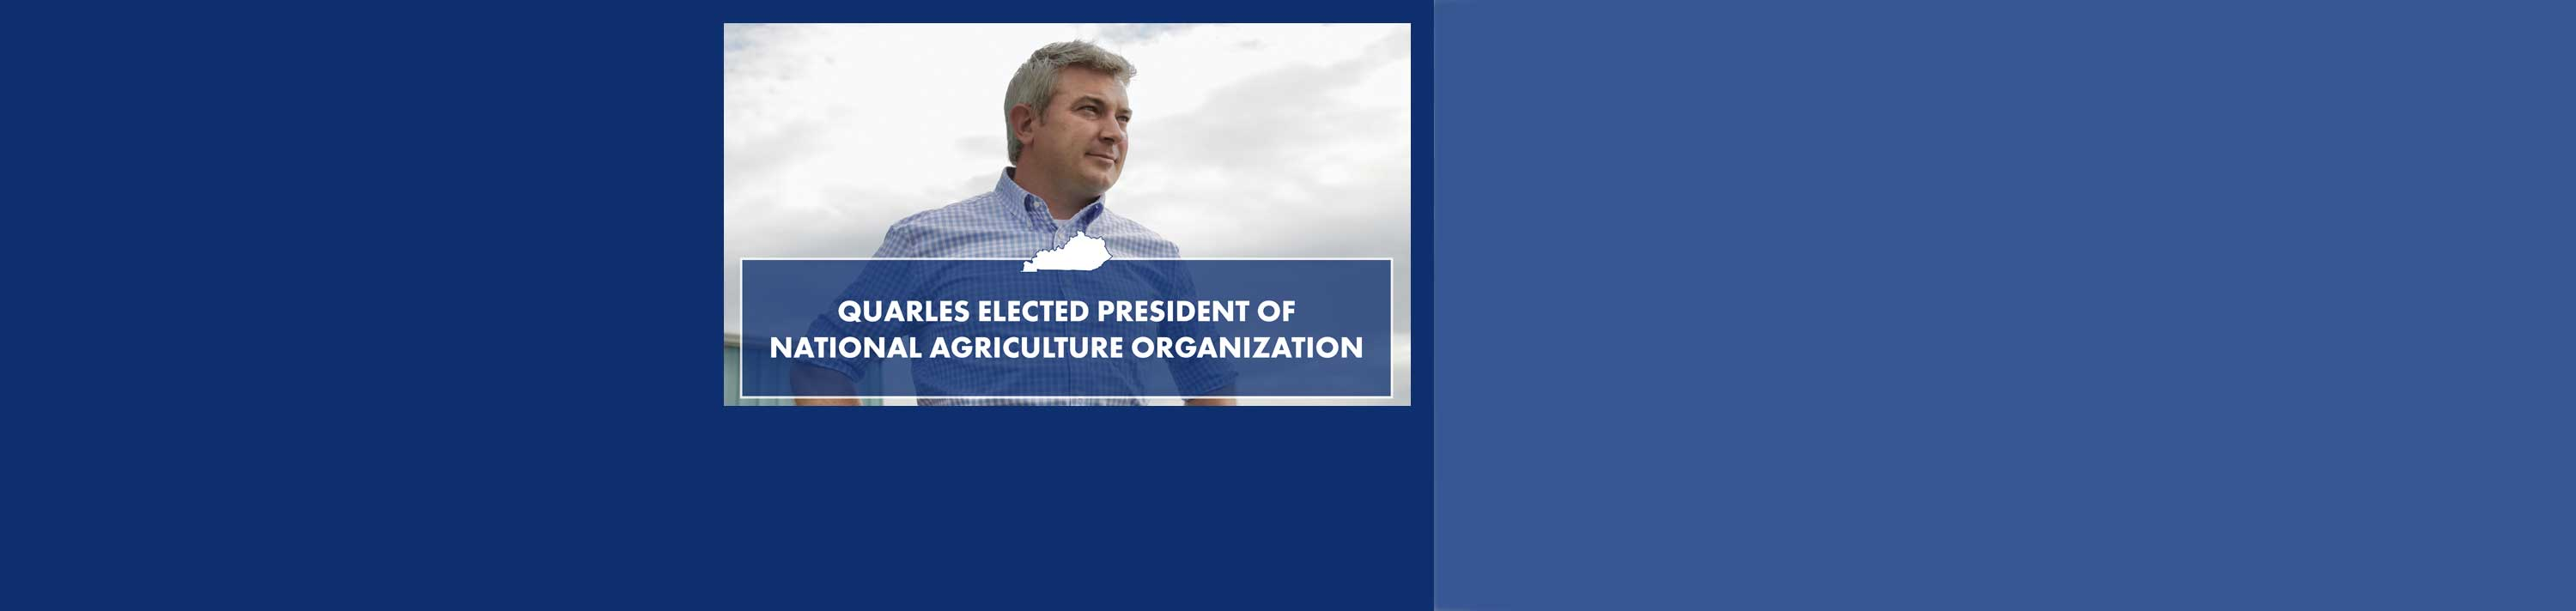 Quarles elected president of national agriculture organization